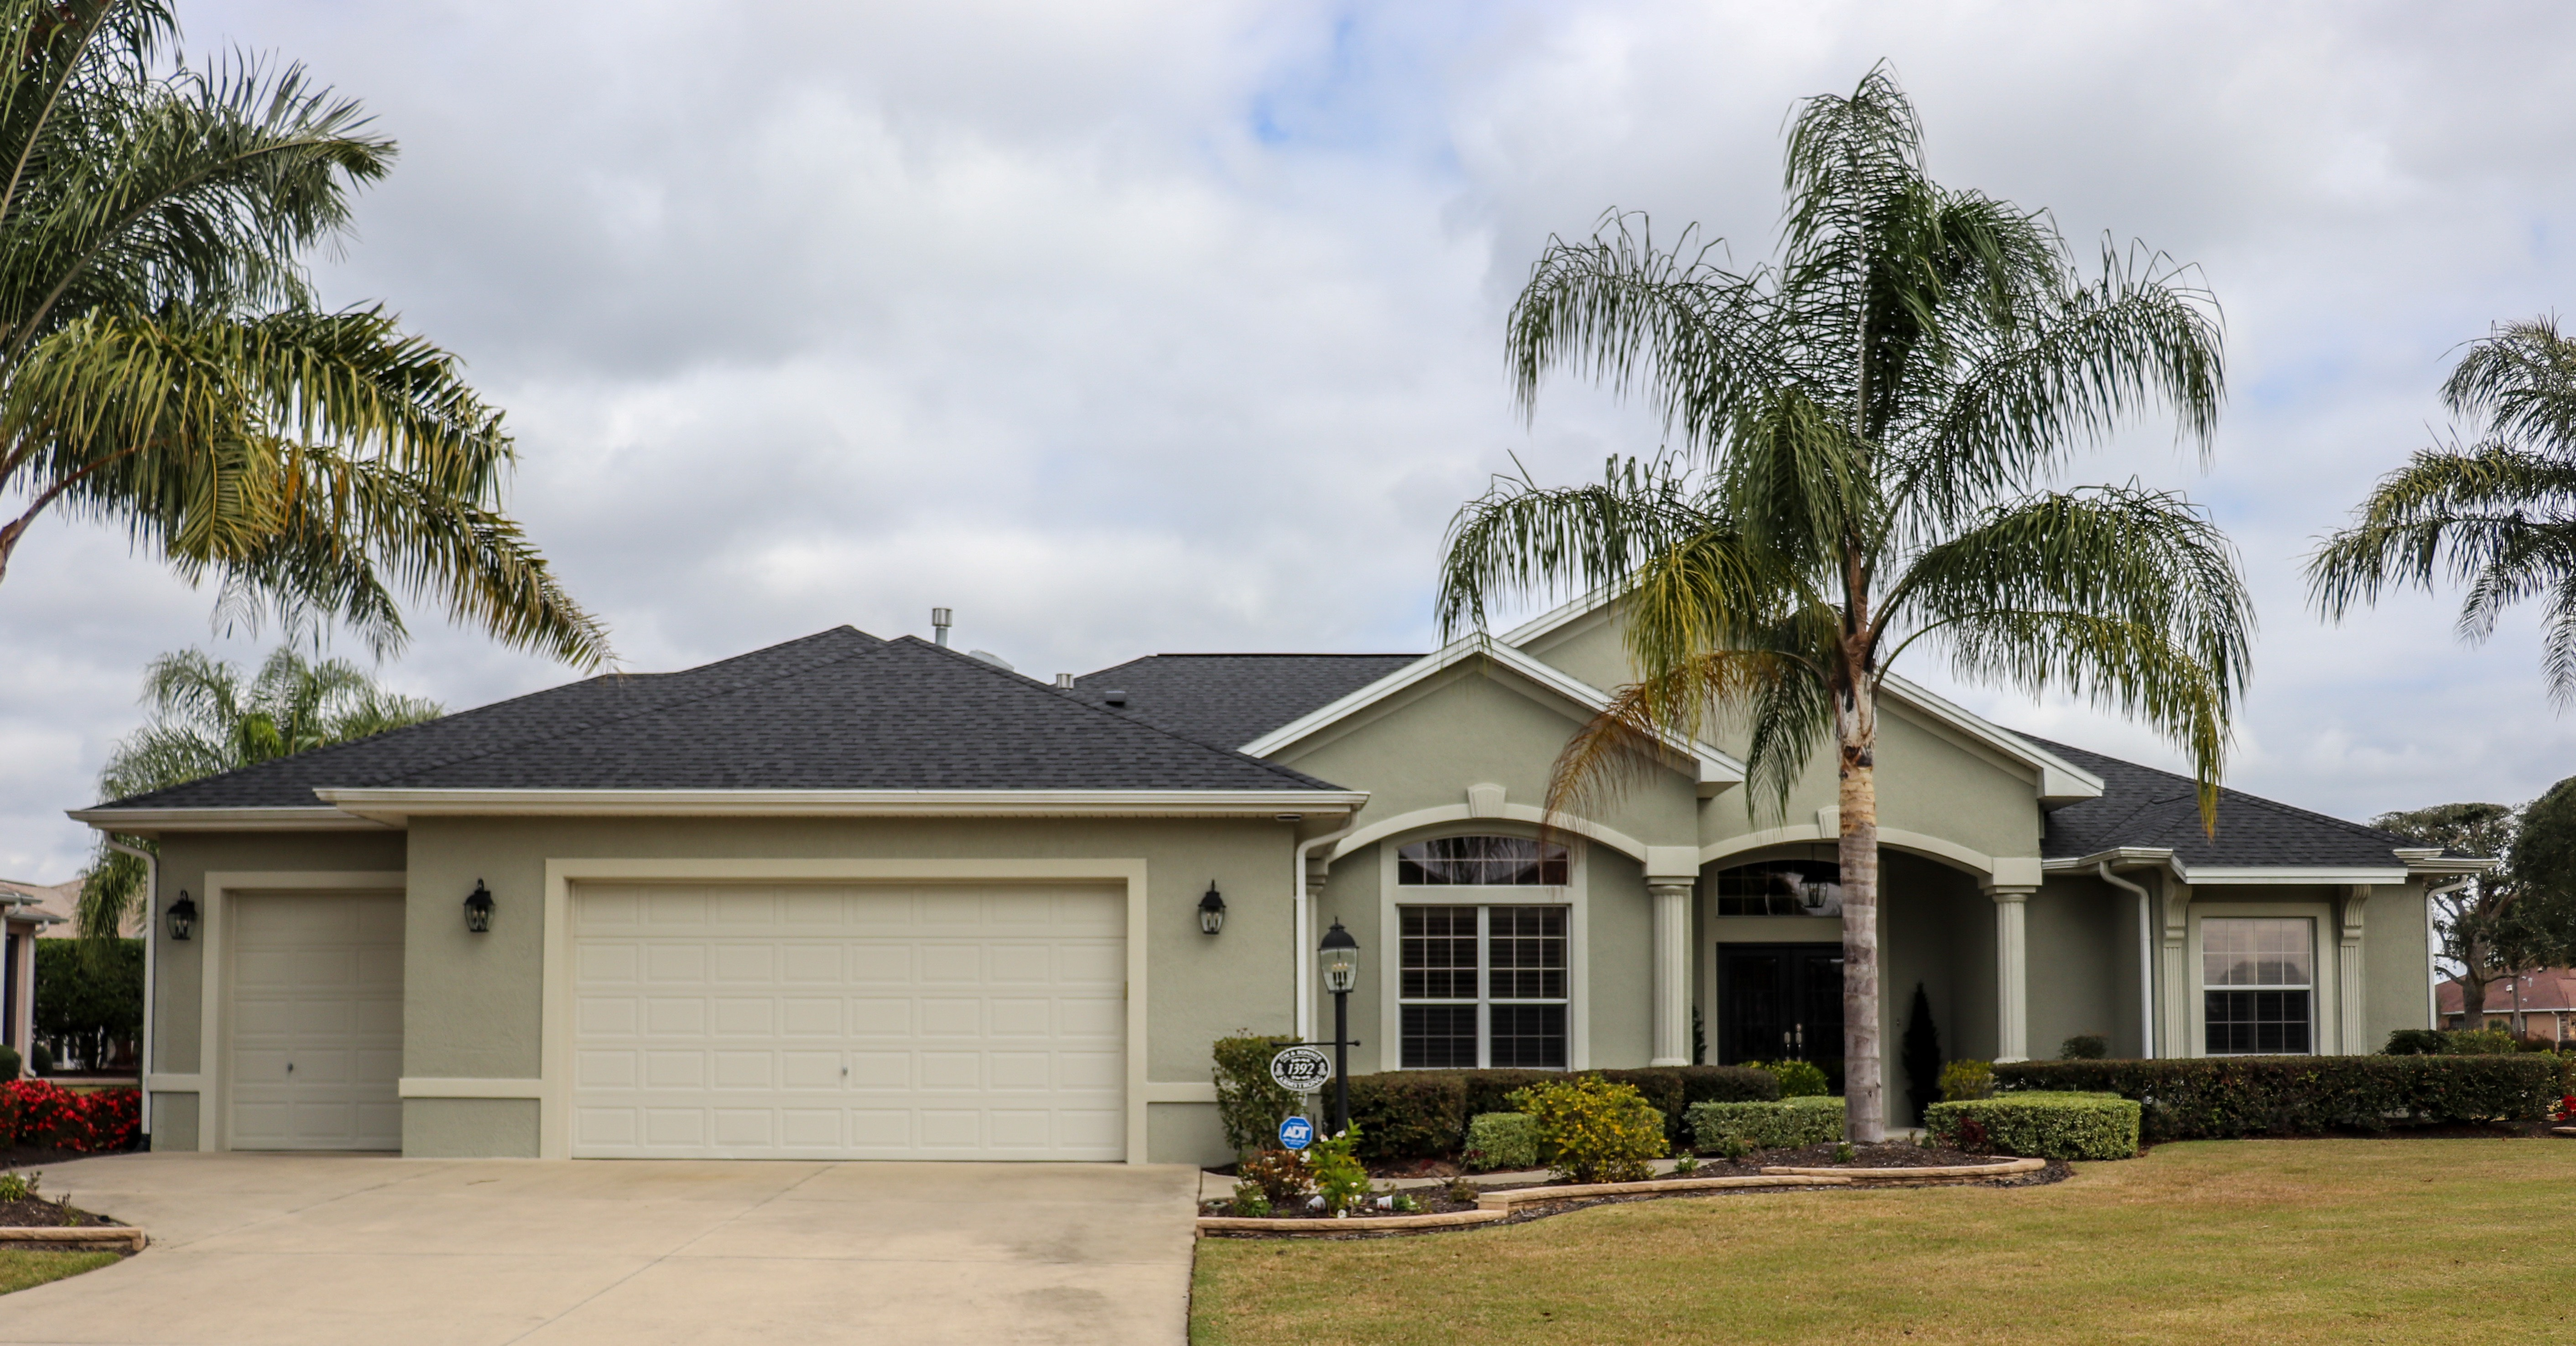 New Construction Roofing Roofing Contractors Central Florida